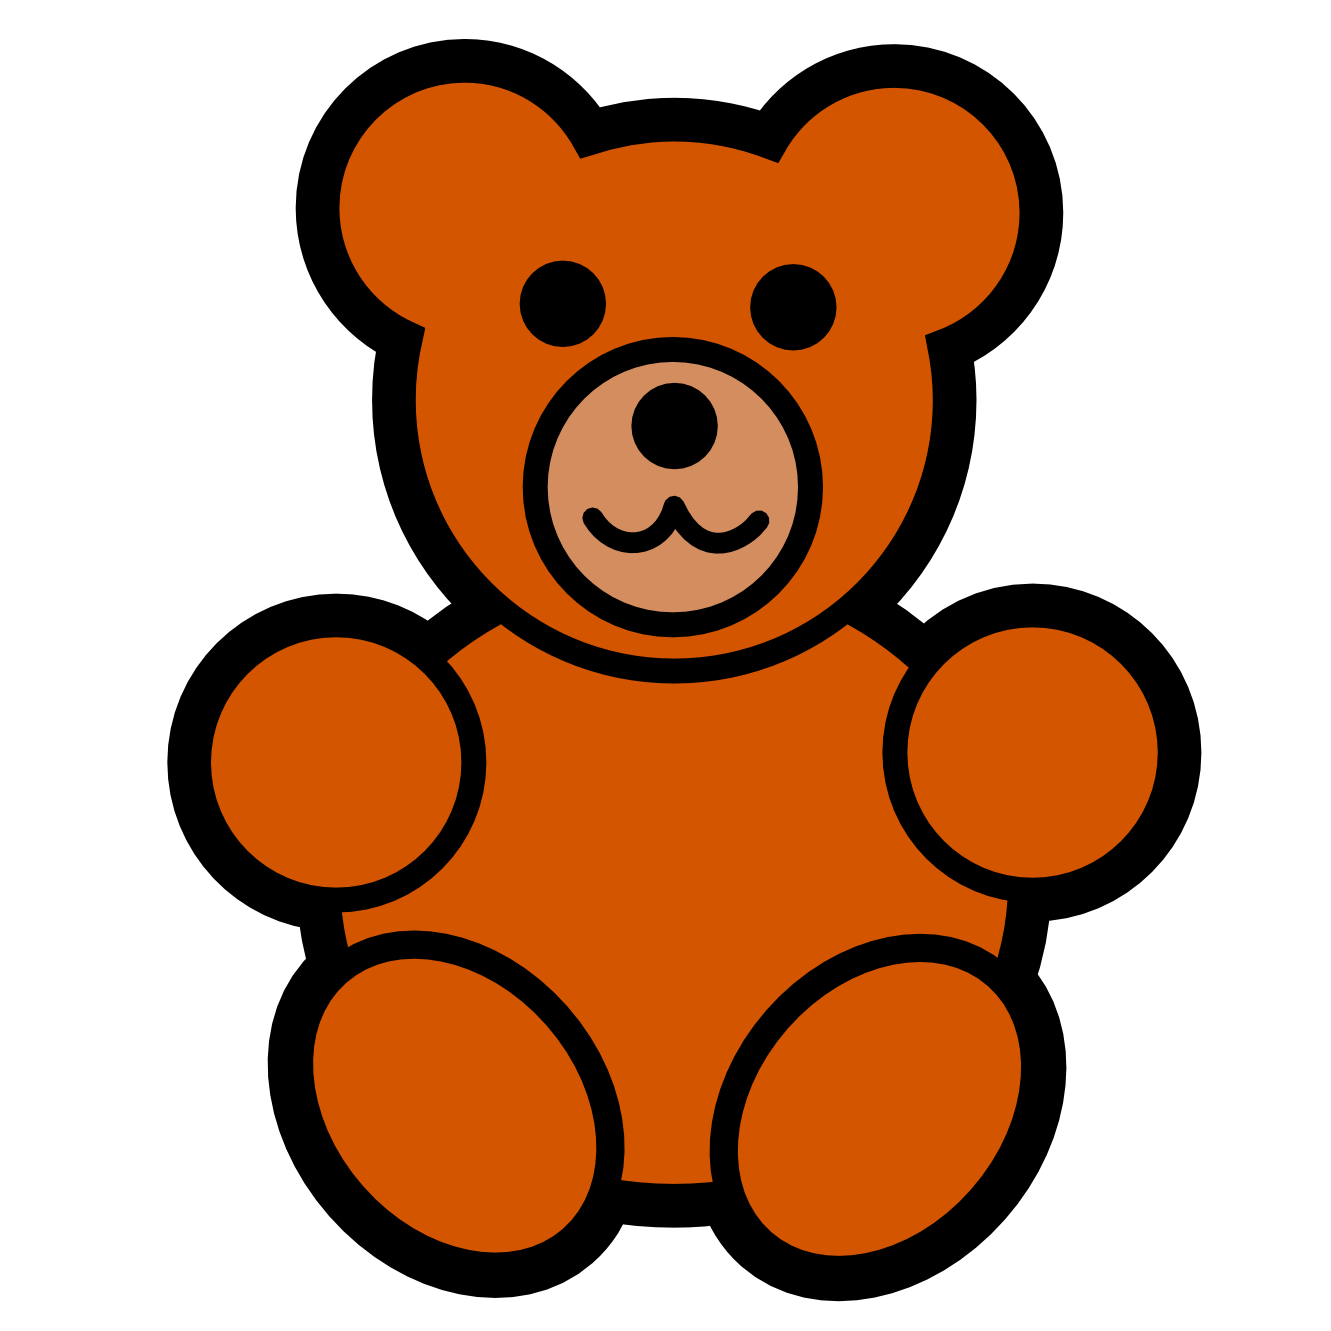 Png Format Images Of Teddy Bear